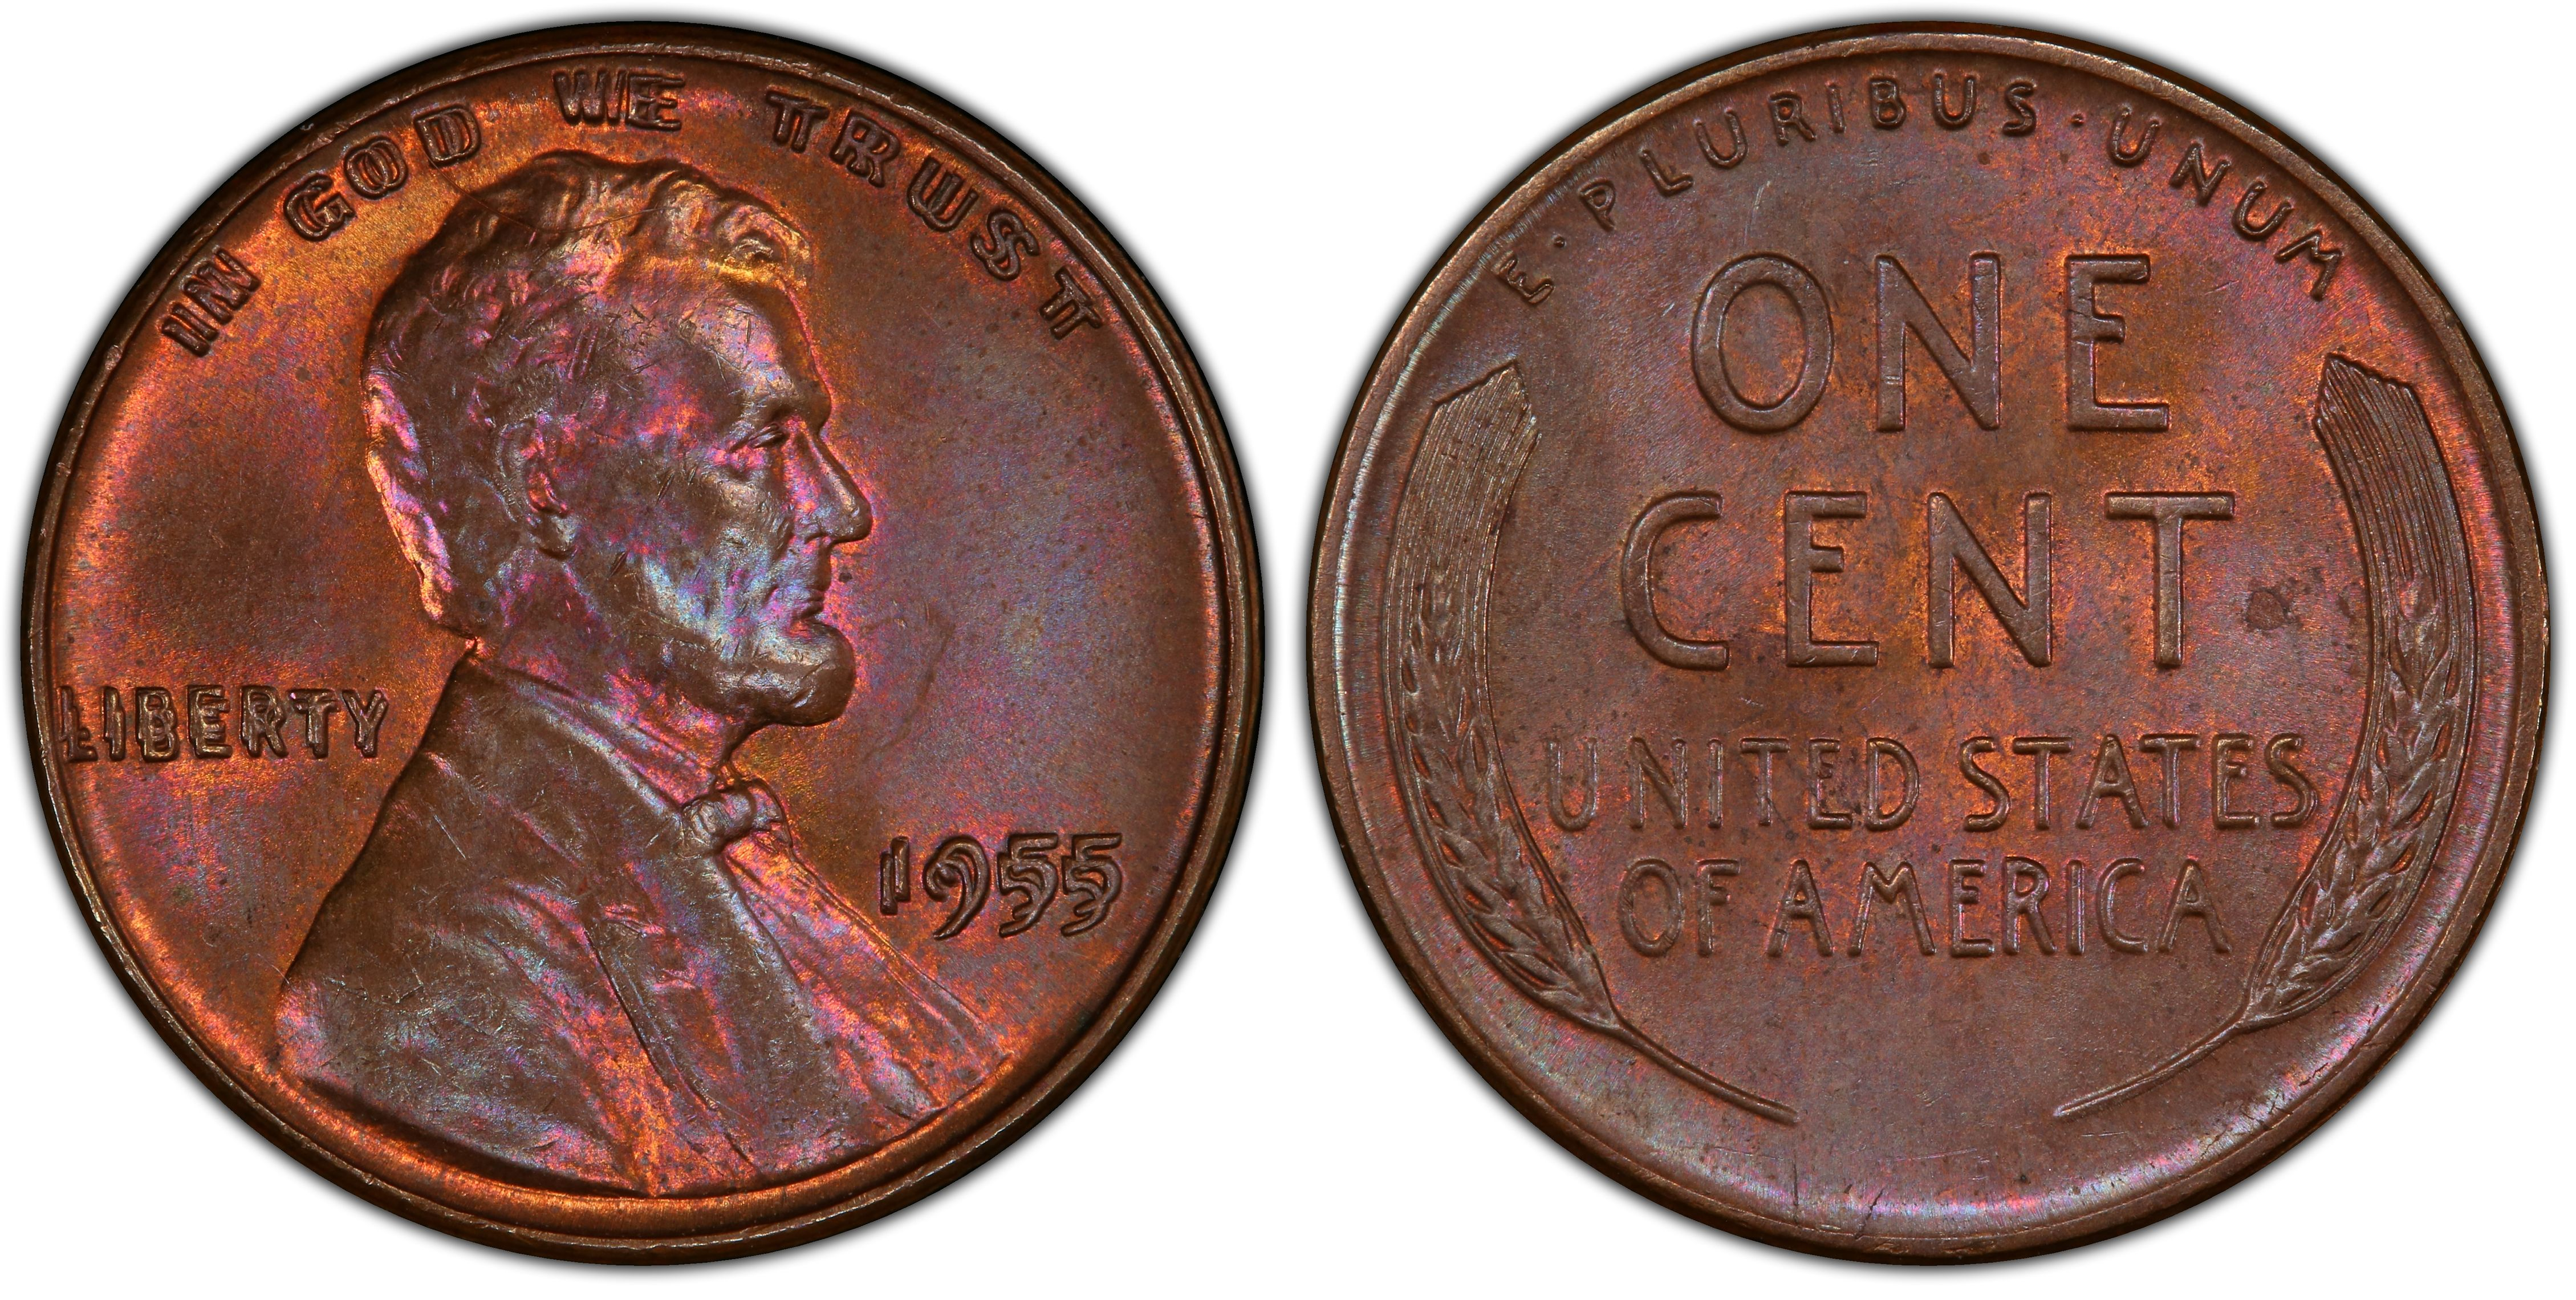 1 COIN 1955-S LINCOLN PENNY IN UNCIRCULATED  CONDITION  J-17-15